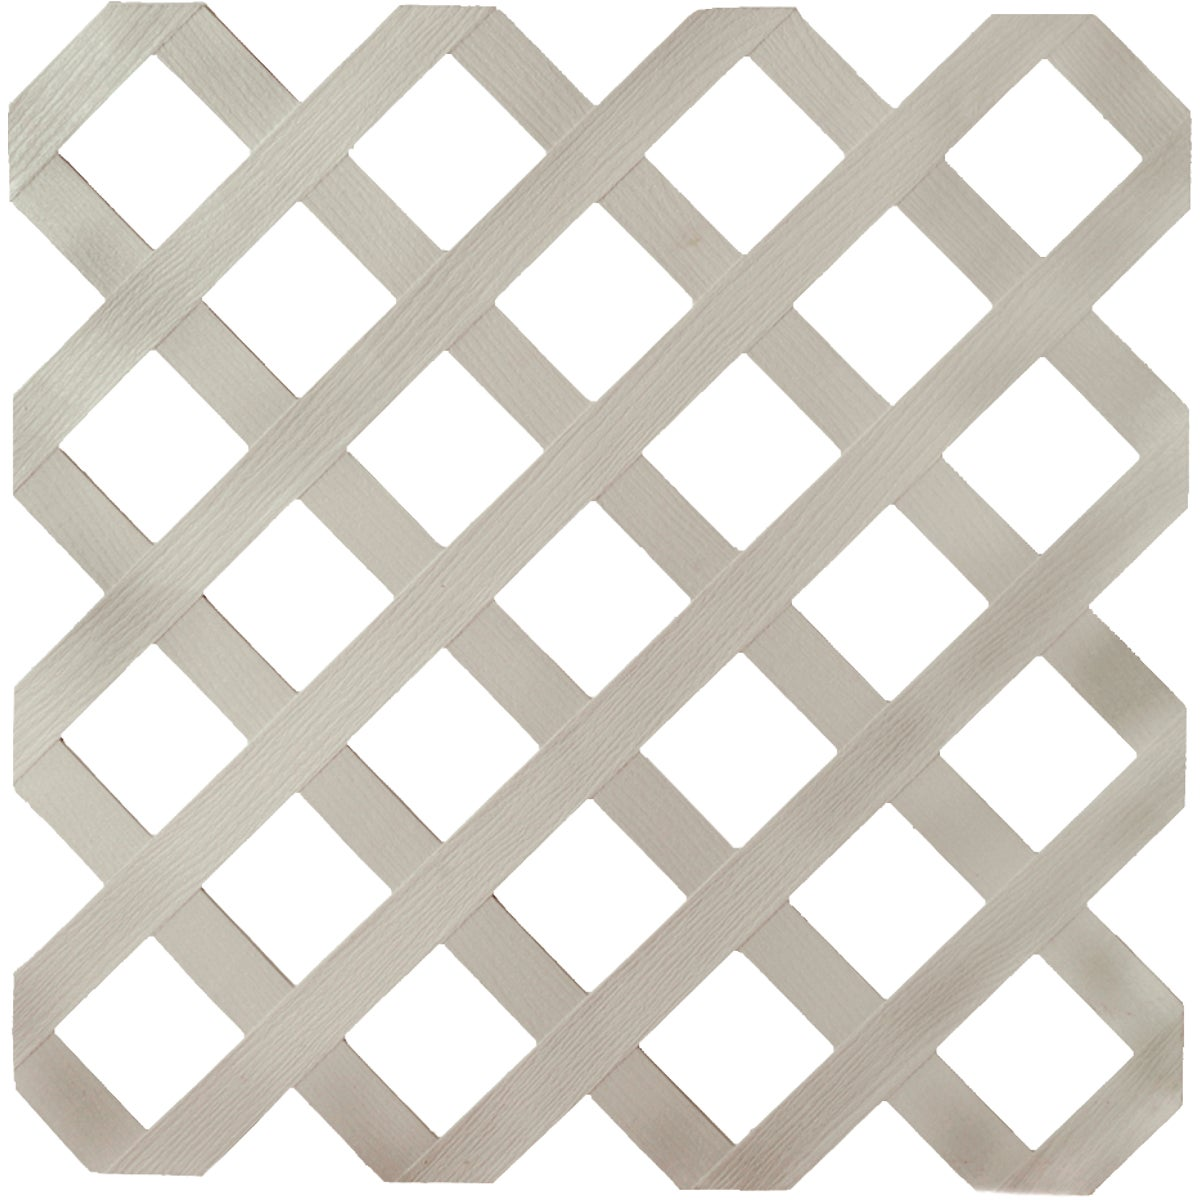 4X8 GRAY LATTICE